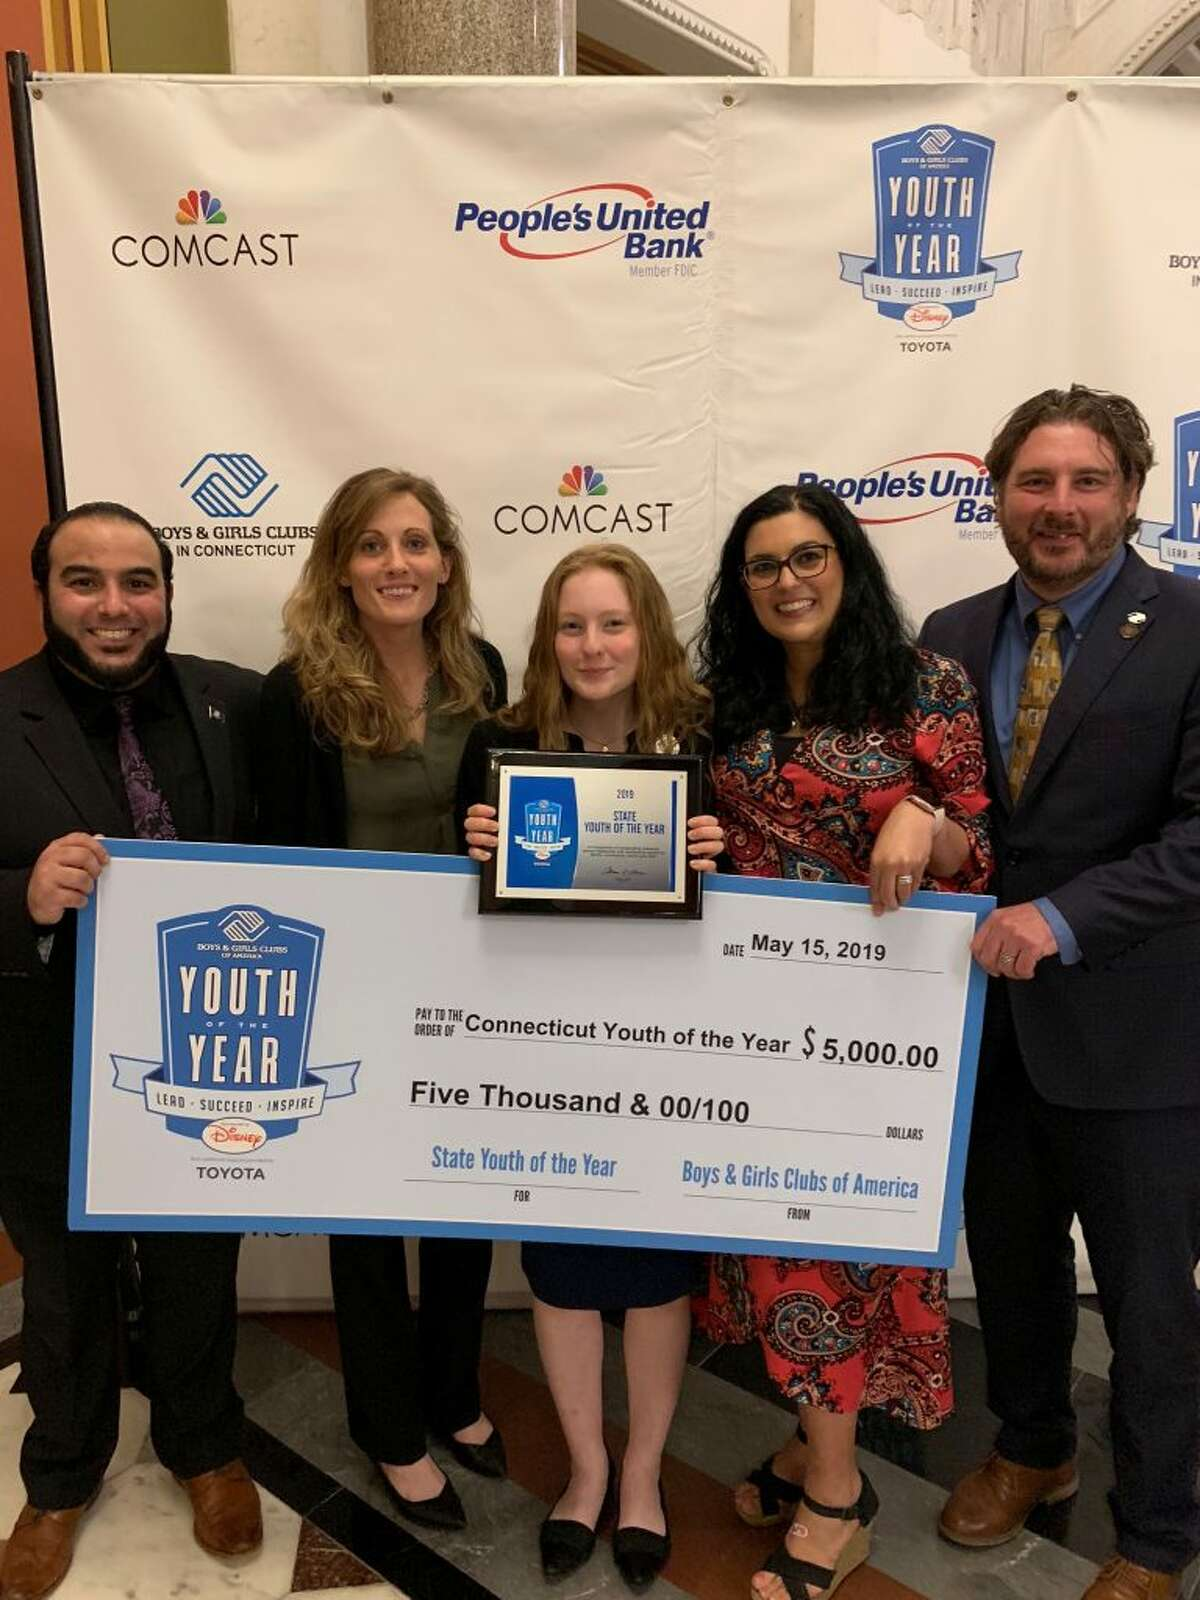 Allie Cauchon, middle, Boys & Girls Club of Ridgefield club member and the Connecticut Youth of the Year, is pictured here with Boys & Girls Club of Ridgefield staff members, from left to right, Jeff Goncalves, Program Director, Jess Podrazky, Senior Program Director, Allie Cauchon, Kristin Goncalves, Director of Operations, and Mike Flynn, Executive Director.